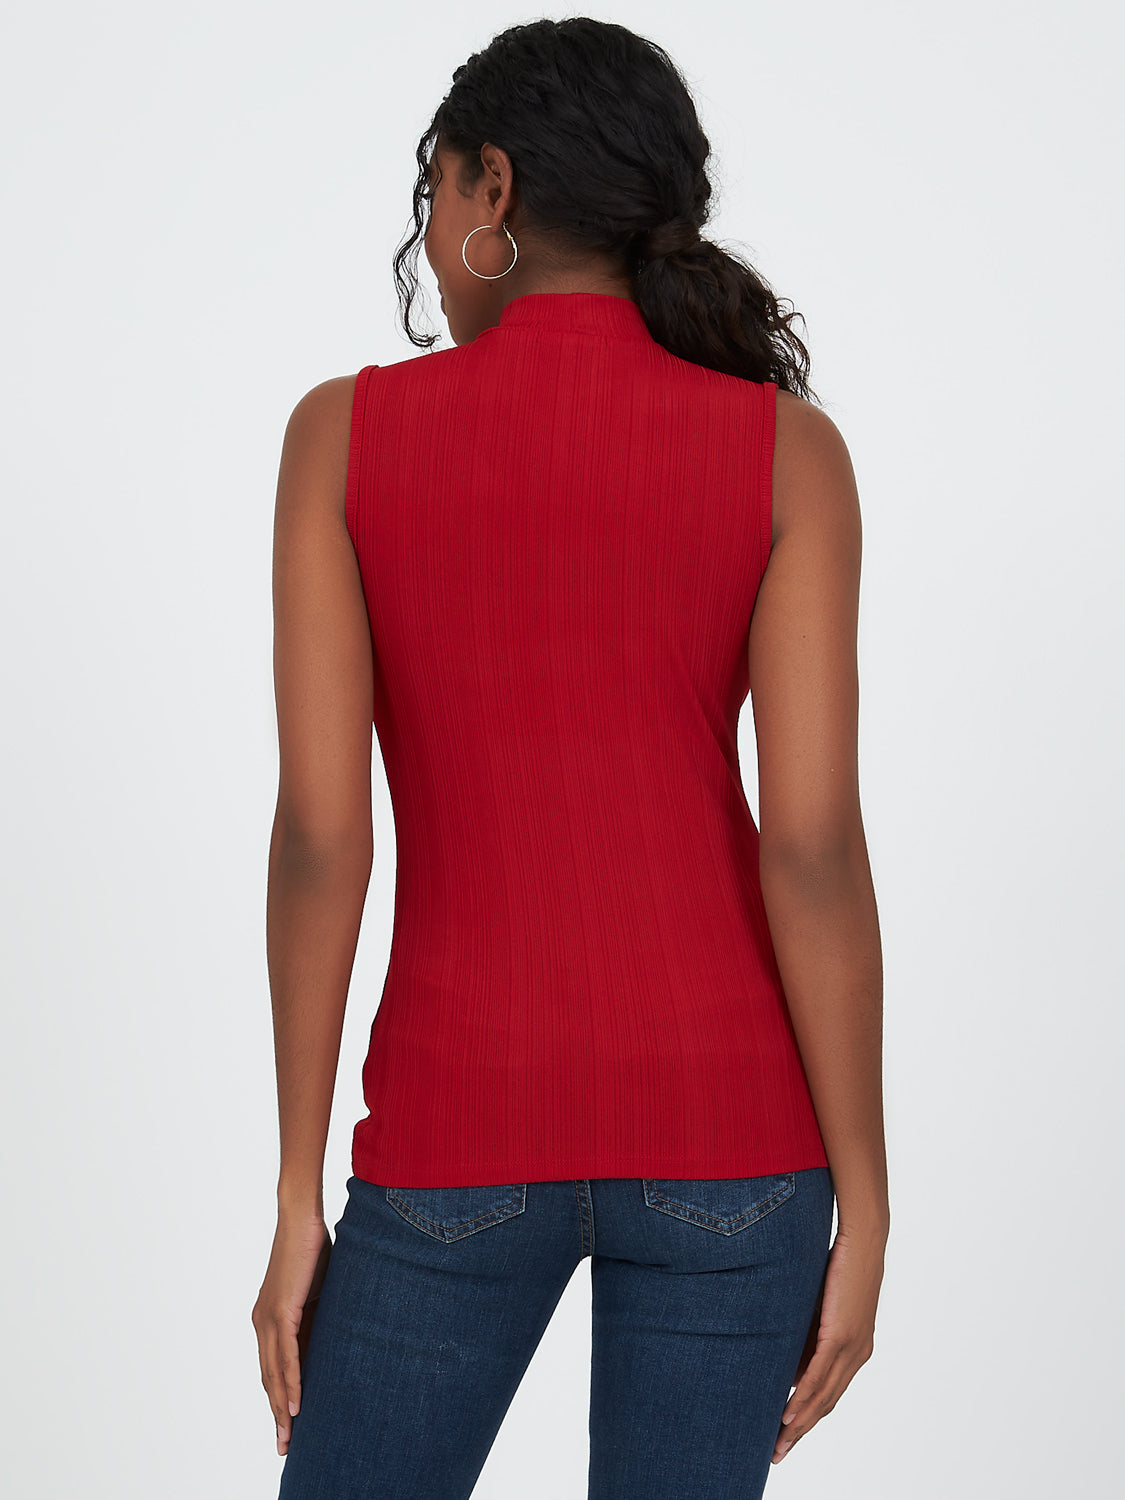 Sleeveless Variegated Rib Knit Top